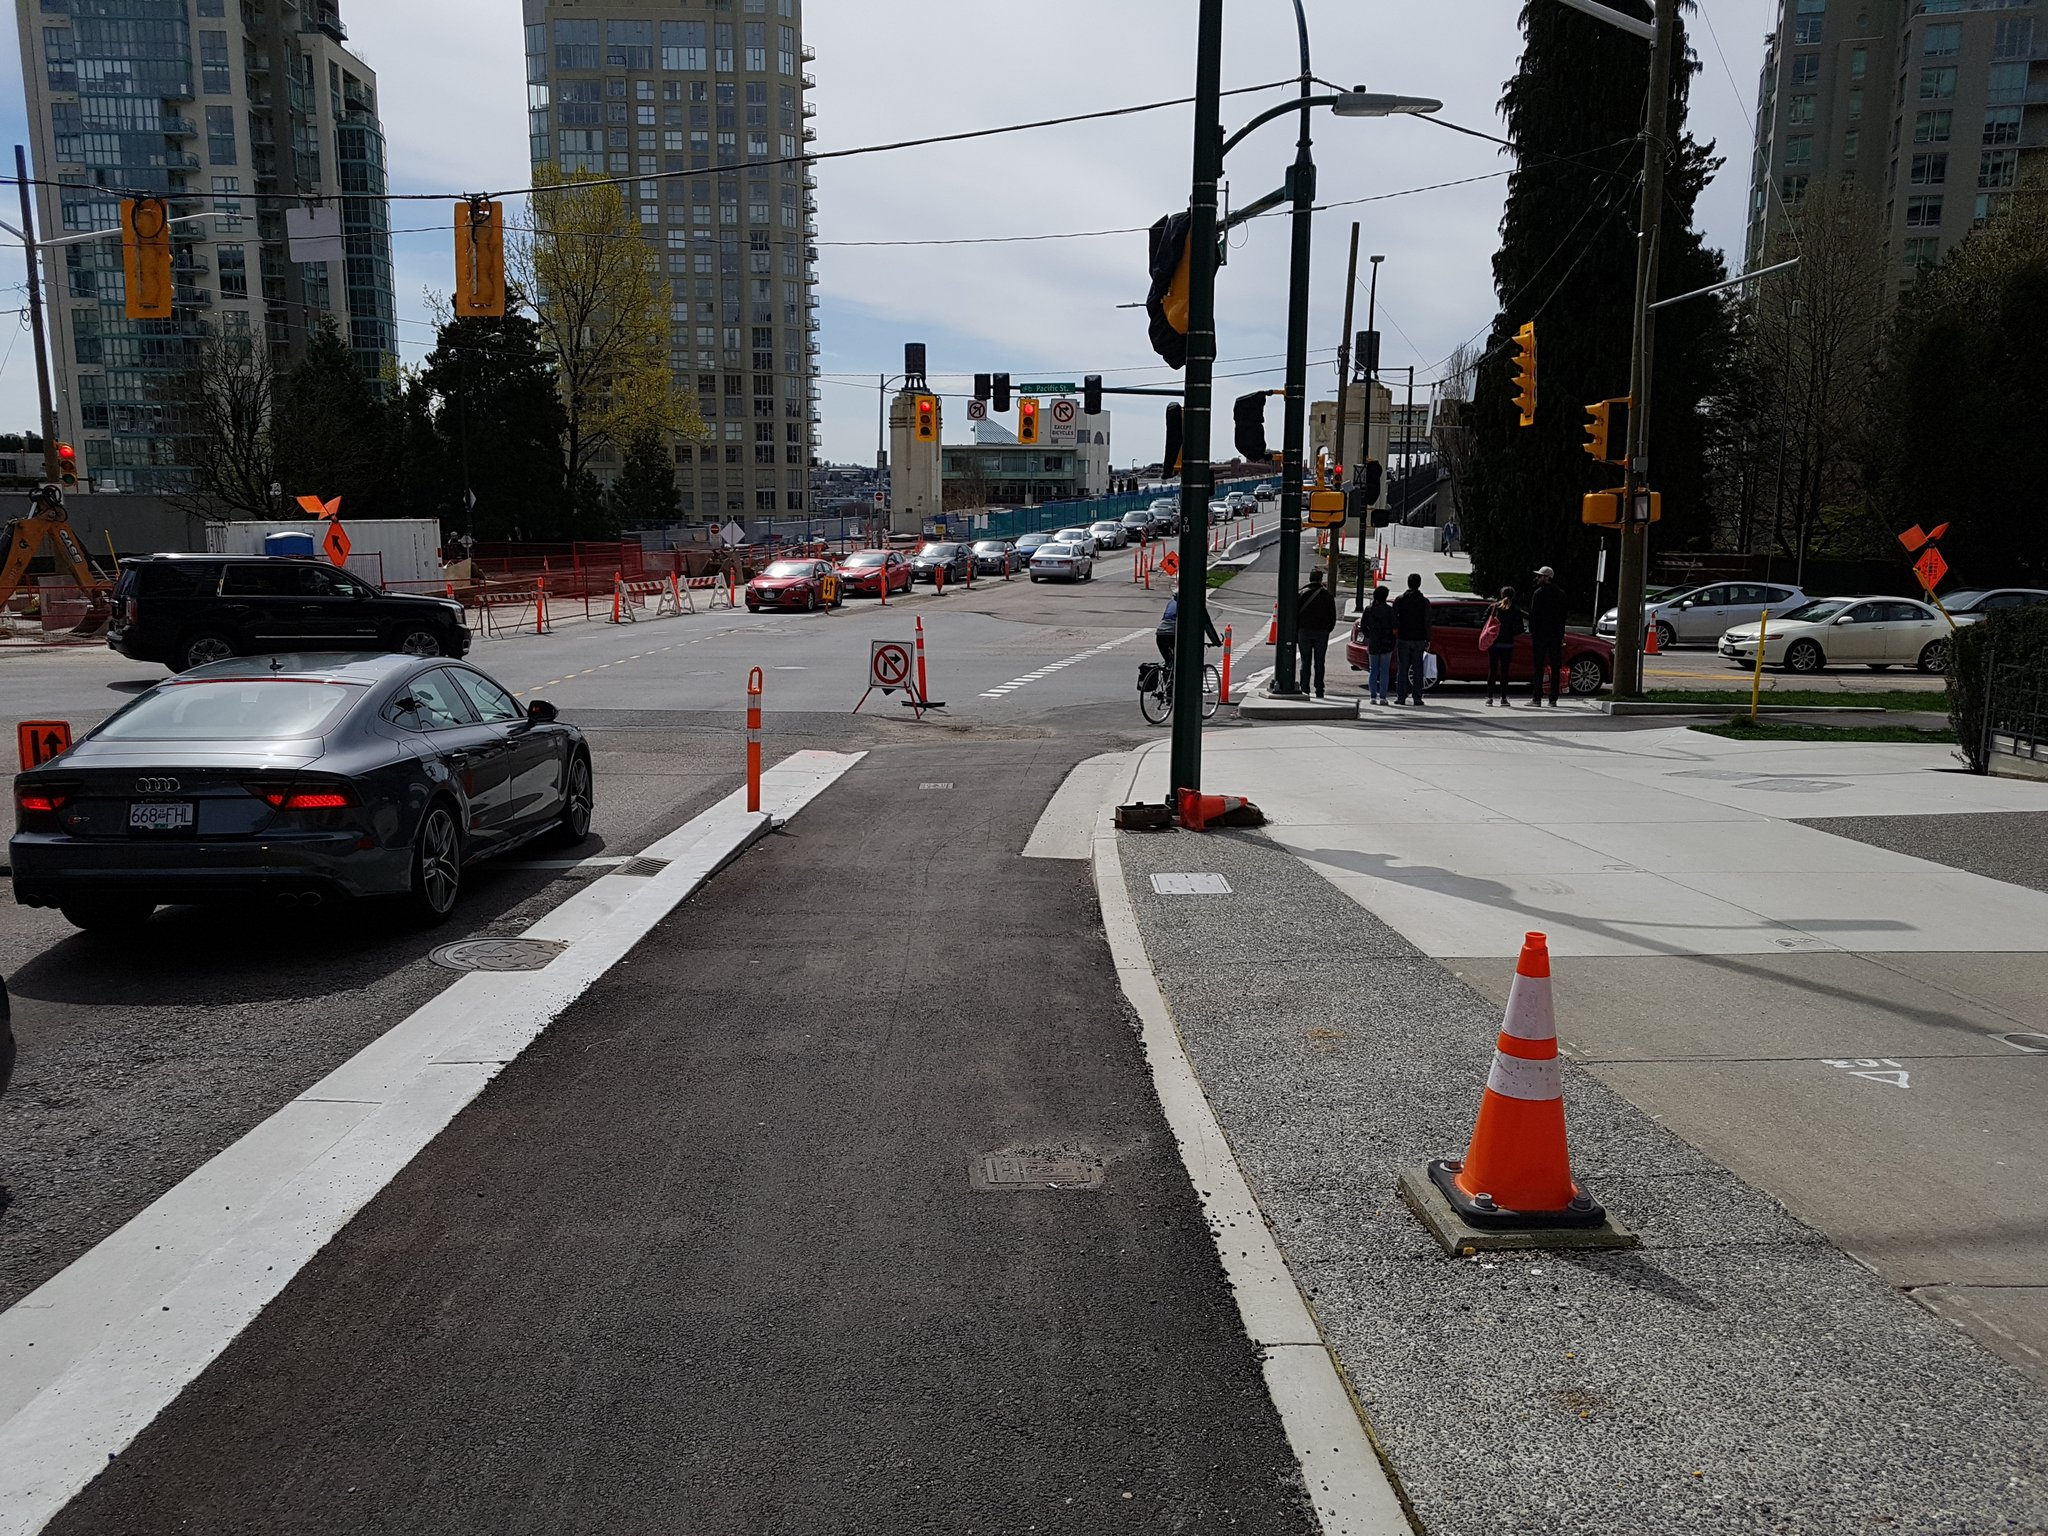 And looking south over the Burrard Bridge, the beginnings on a protected intersection #yyjbike https://t.co/3UrDBn7mSo